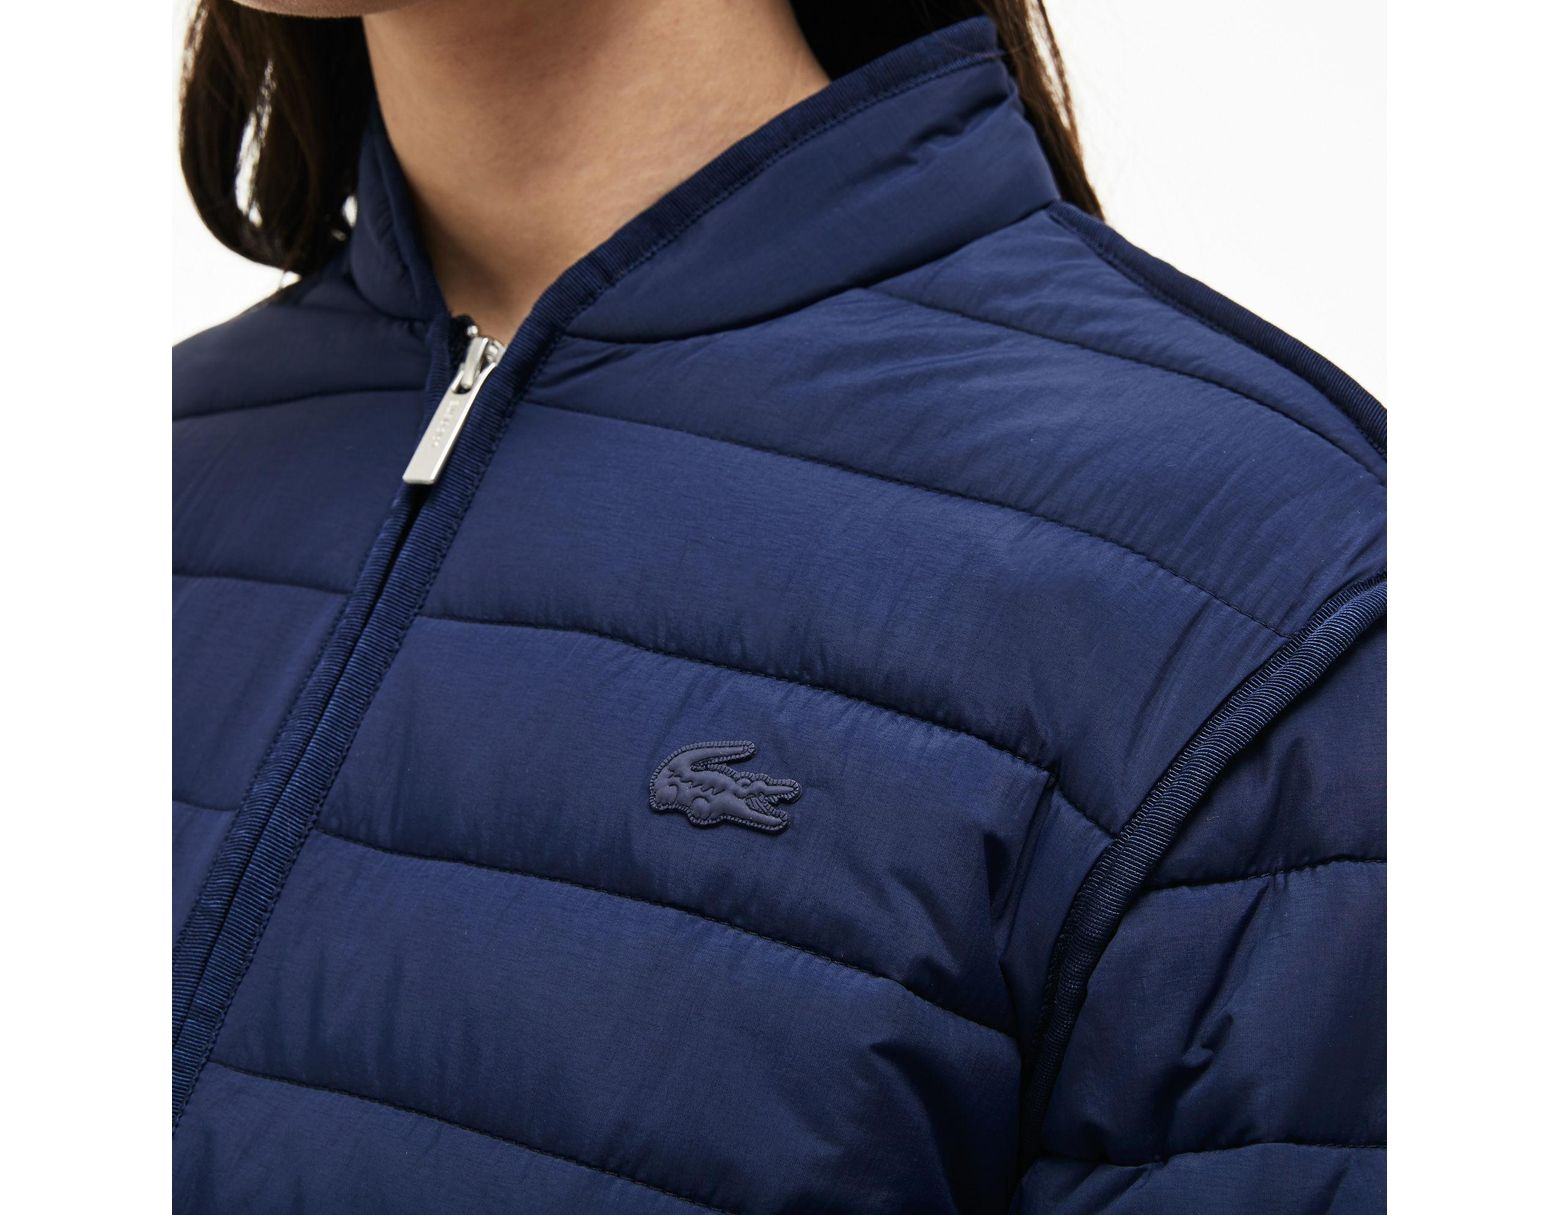 Soft Blue Women's Jacket Quilted Zippered Taffeta 0yNOmnv8Pw